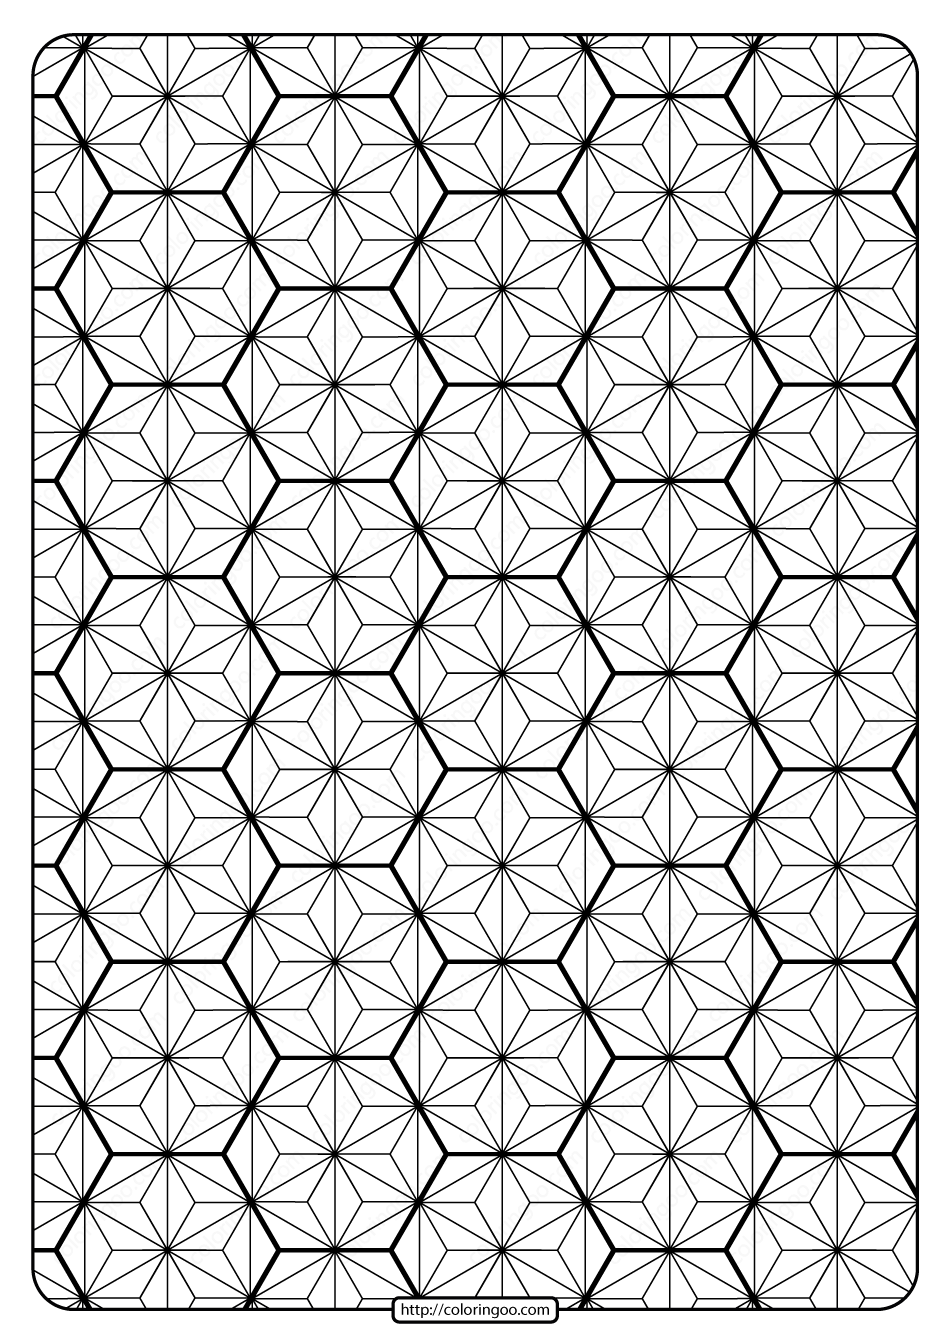 Printable Geometric Pattern Pdf Coloring Page 023